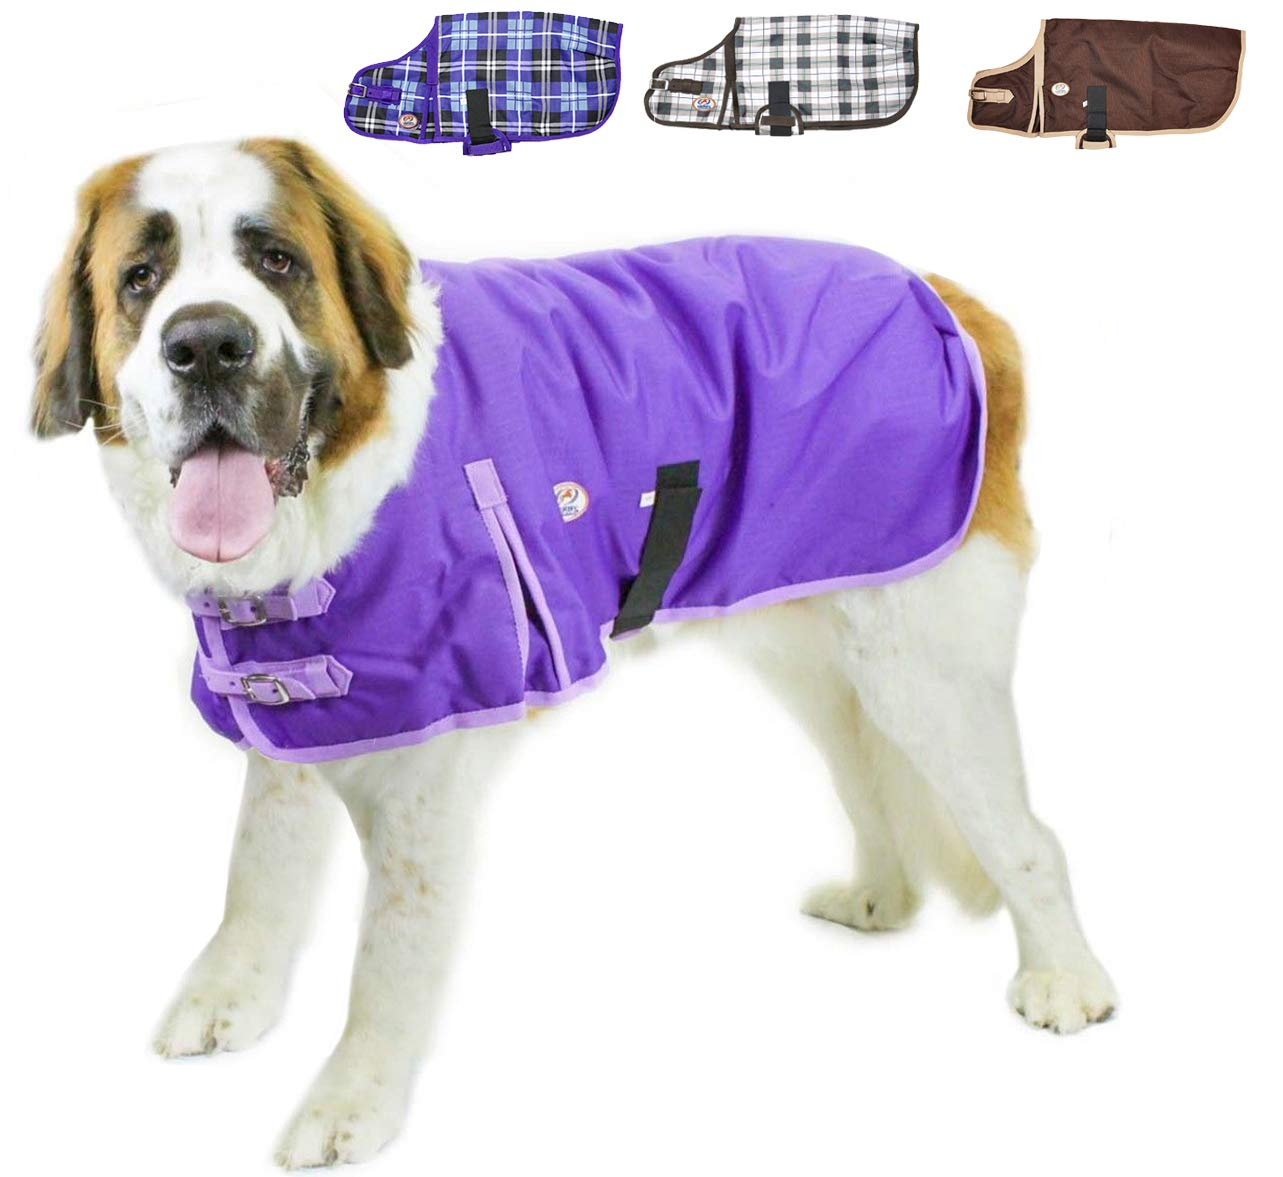 Derby Originals Horse Tough 1200D Waterproof Winter Dog Coat with 2 Year Warranty Multiple Styles /& Sizes Designed with Heavy Duty Ripstop Nylon /& No Rub Breathable Inner Lining Insulated